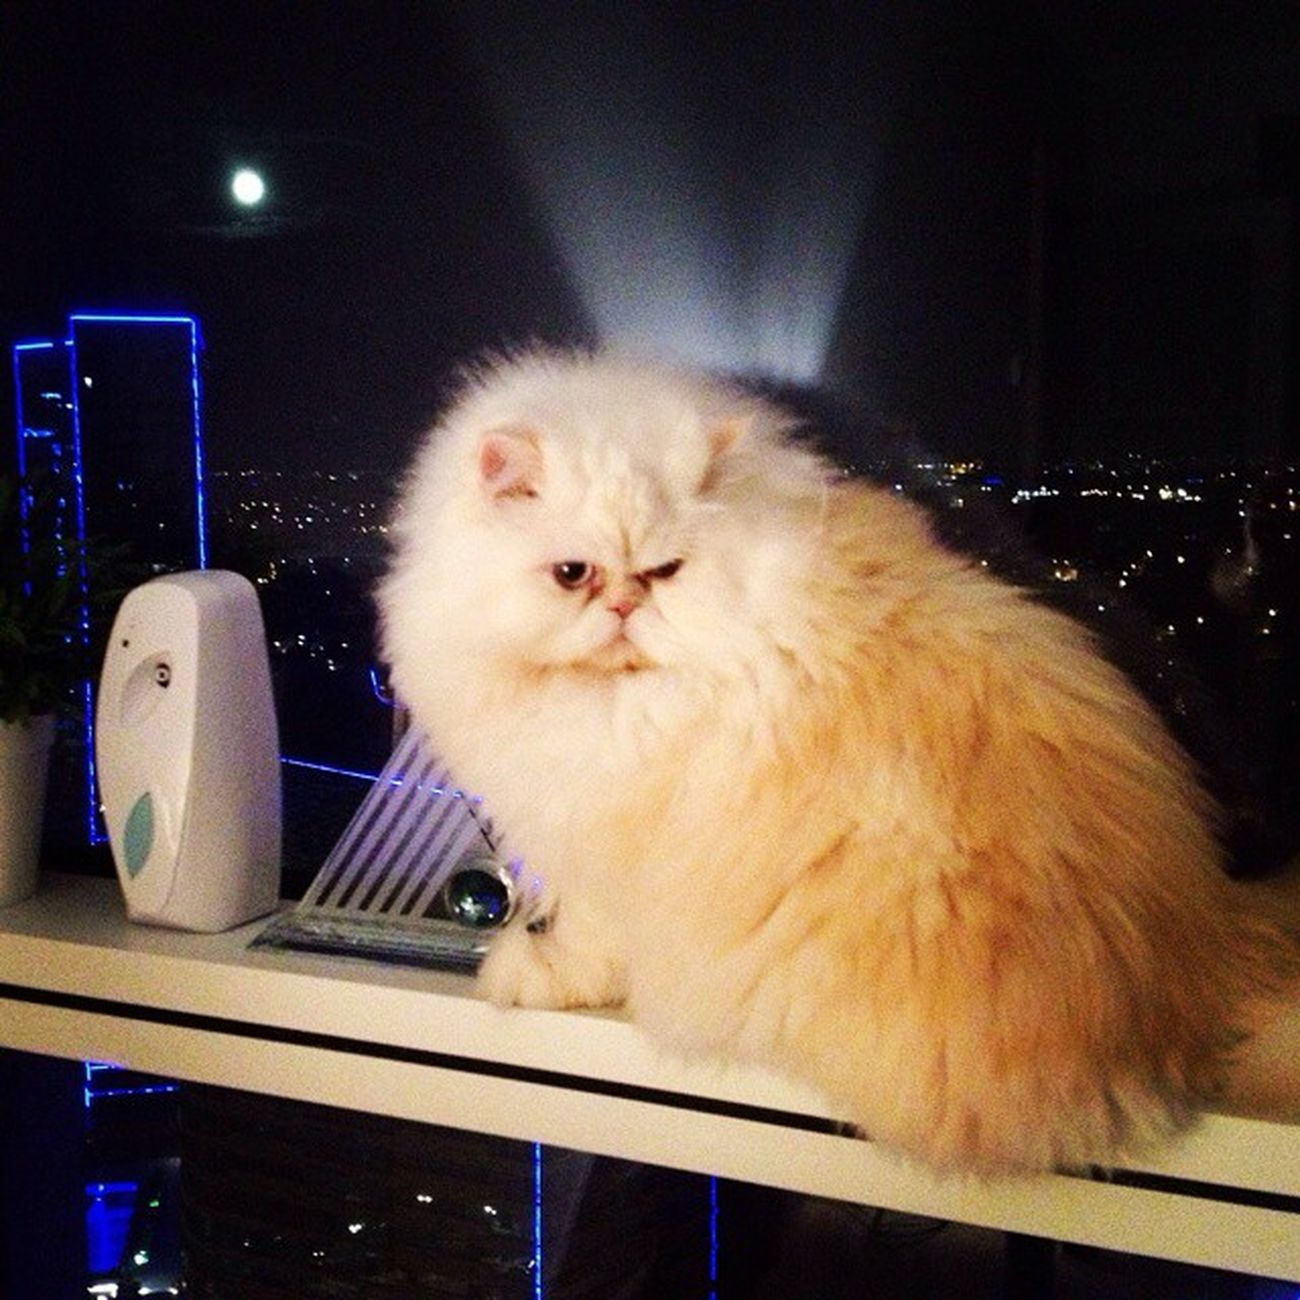 Mica Cat Model F4F l4l sweet persian cat